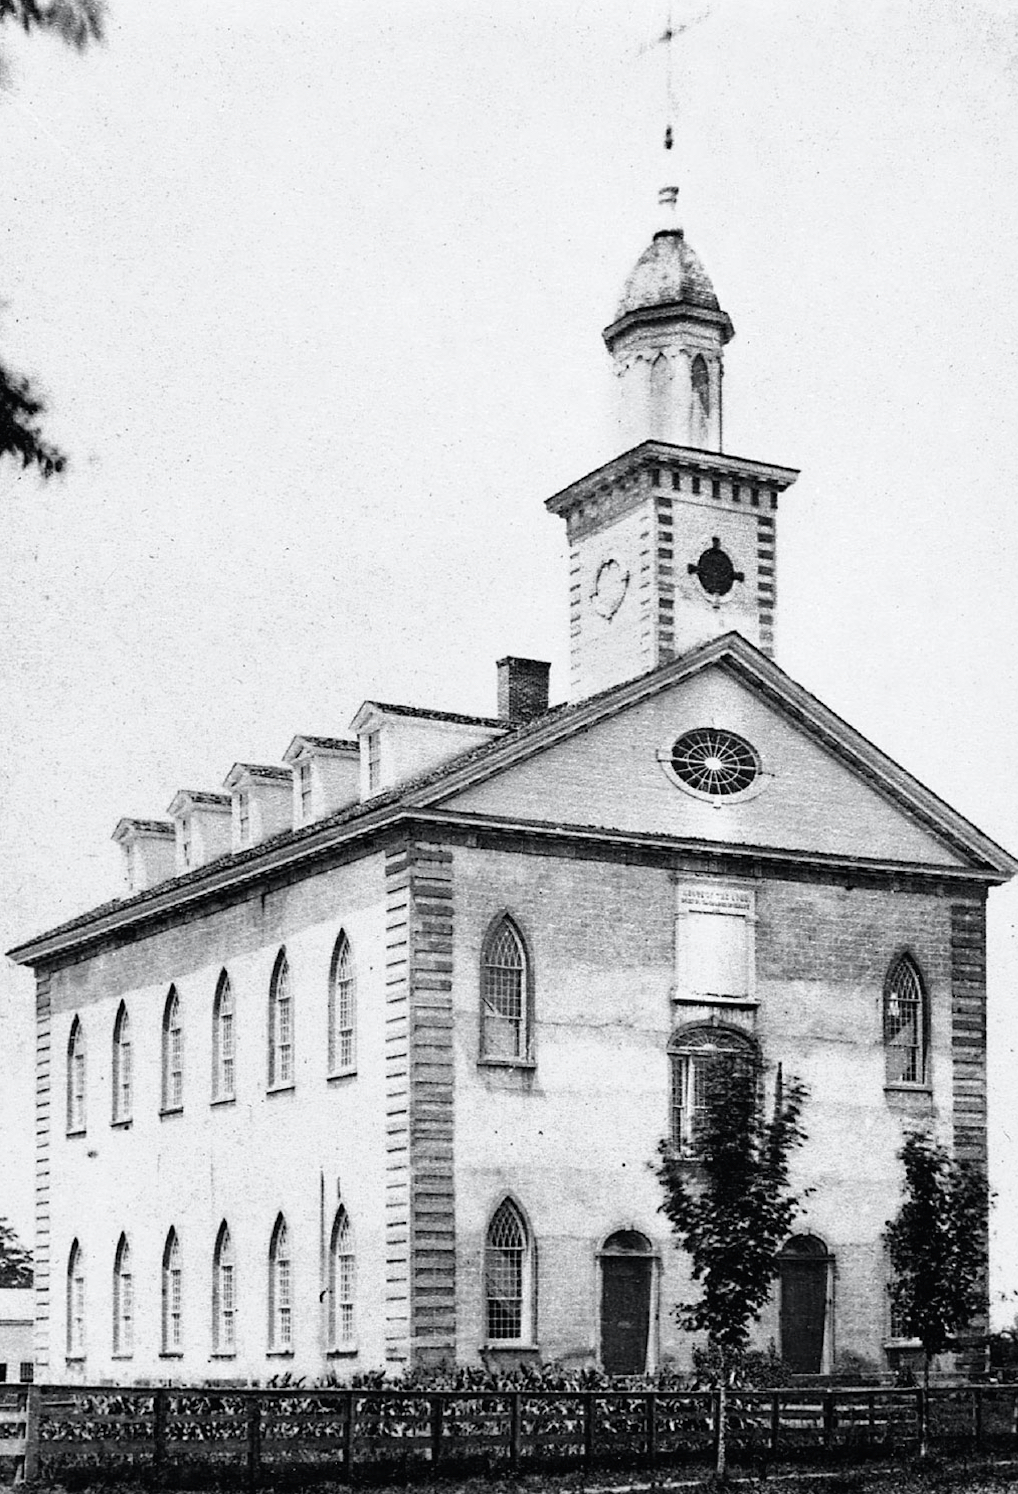 A photo of the Kirtland Temple circa 1875. It was dedicated on March 27, 1836 after three years of construction.